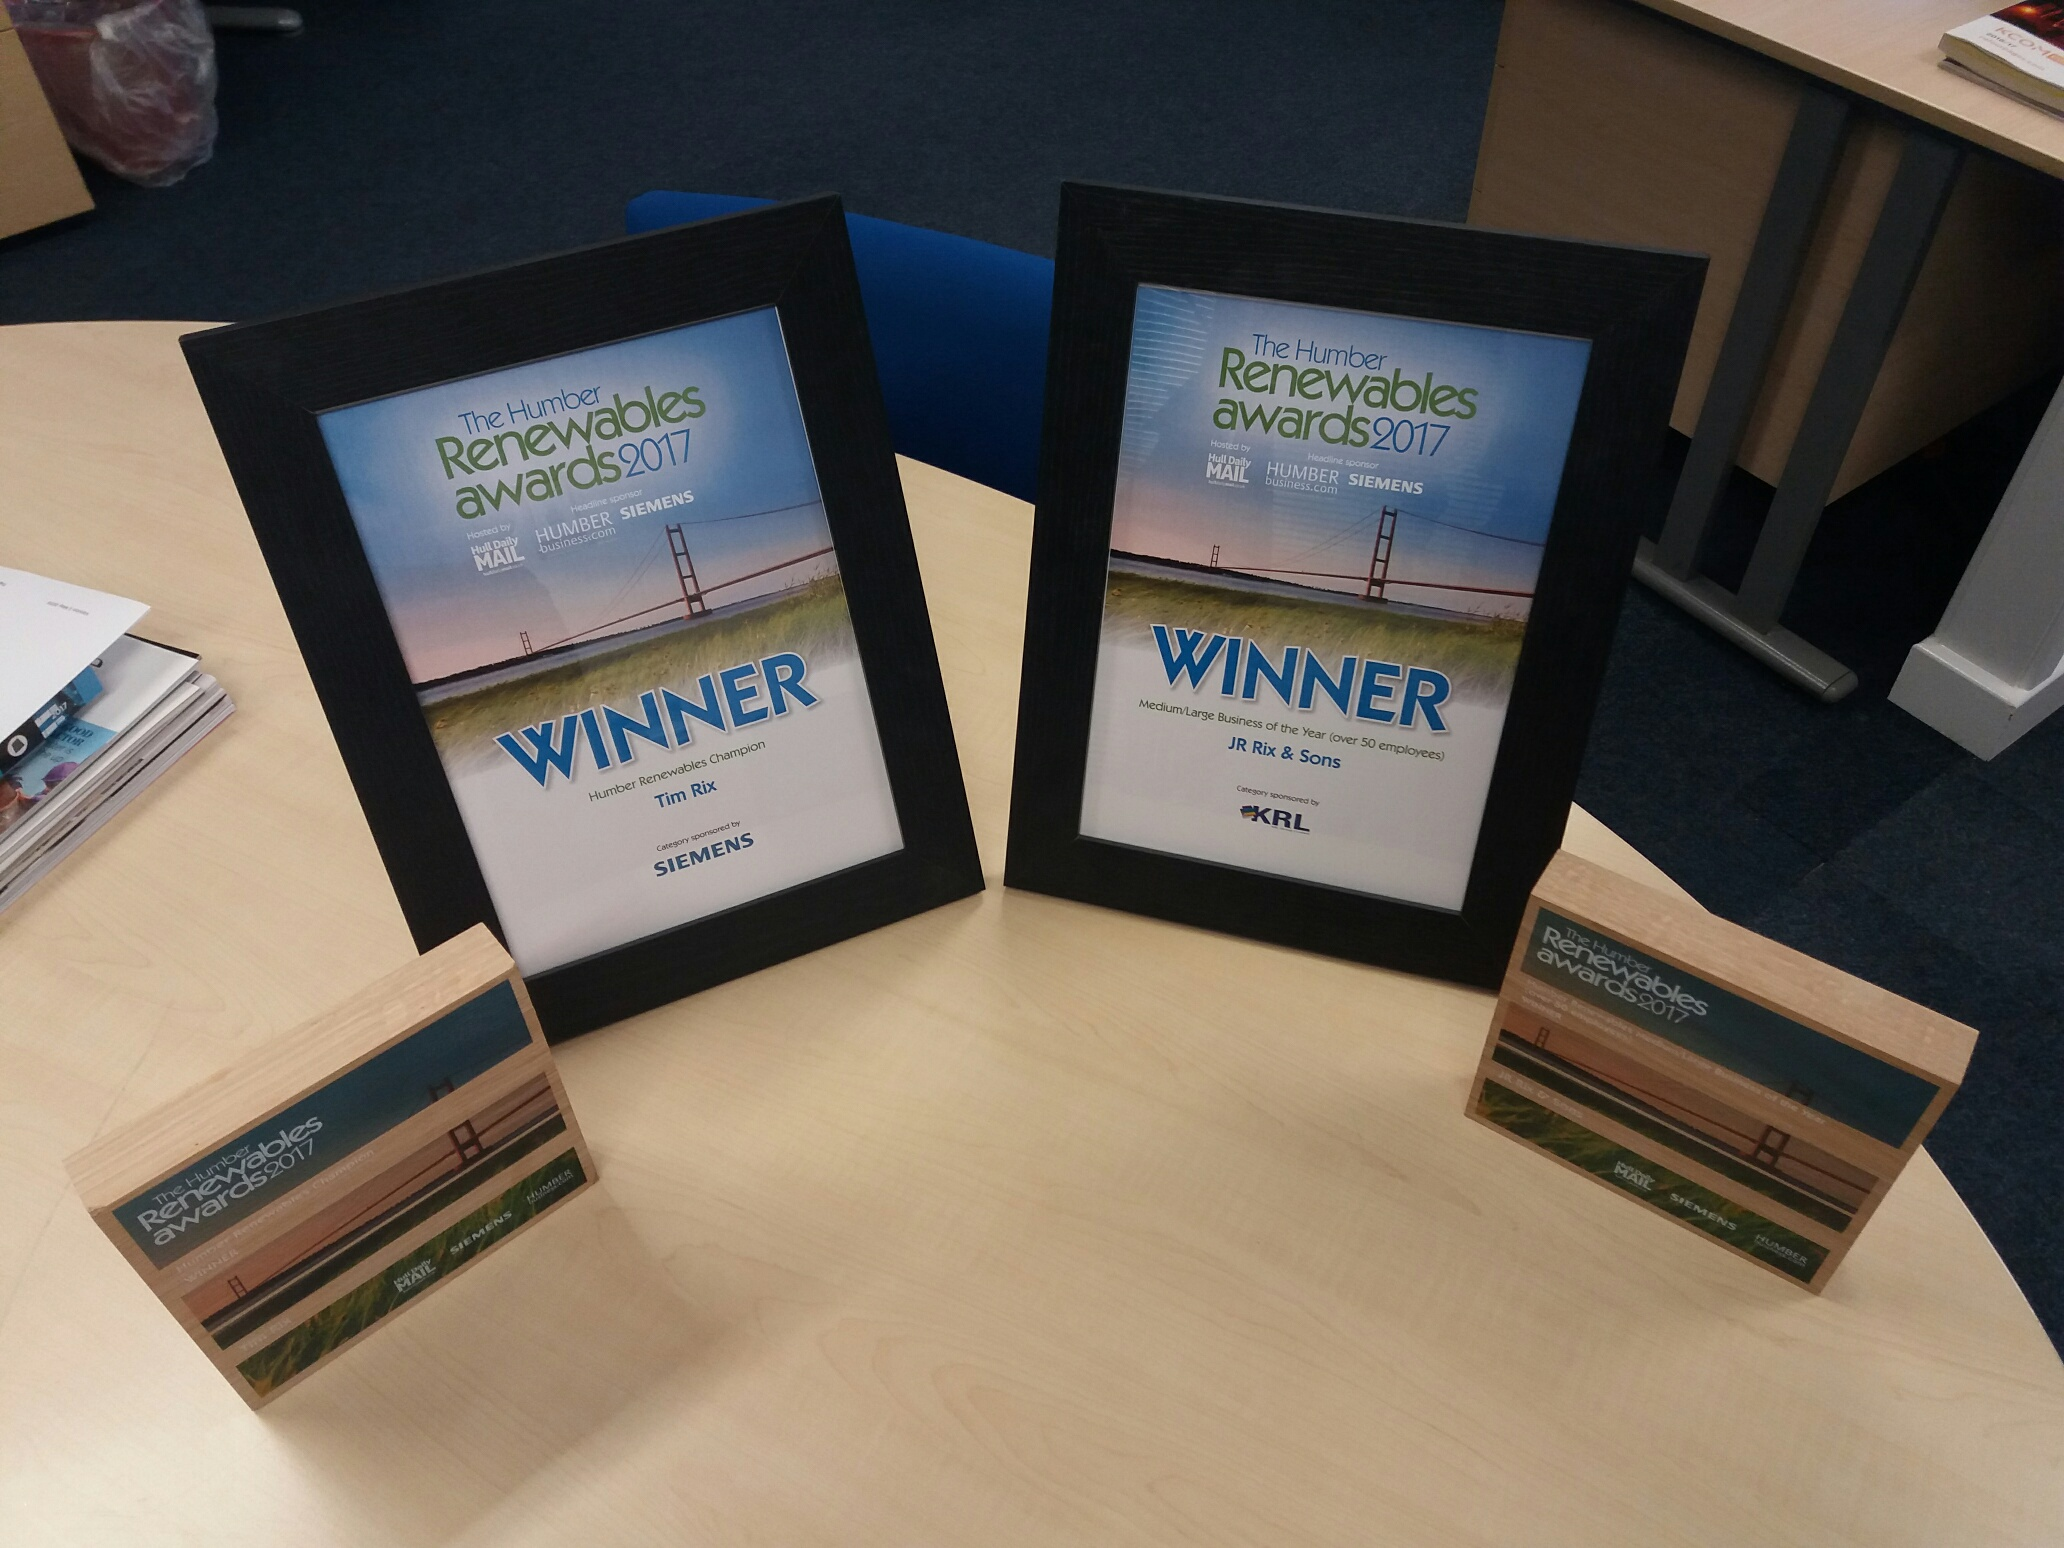 Rix Sea Shuttle win Humber renewables award